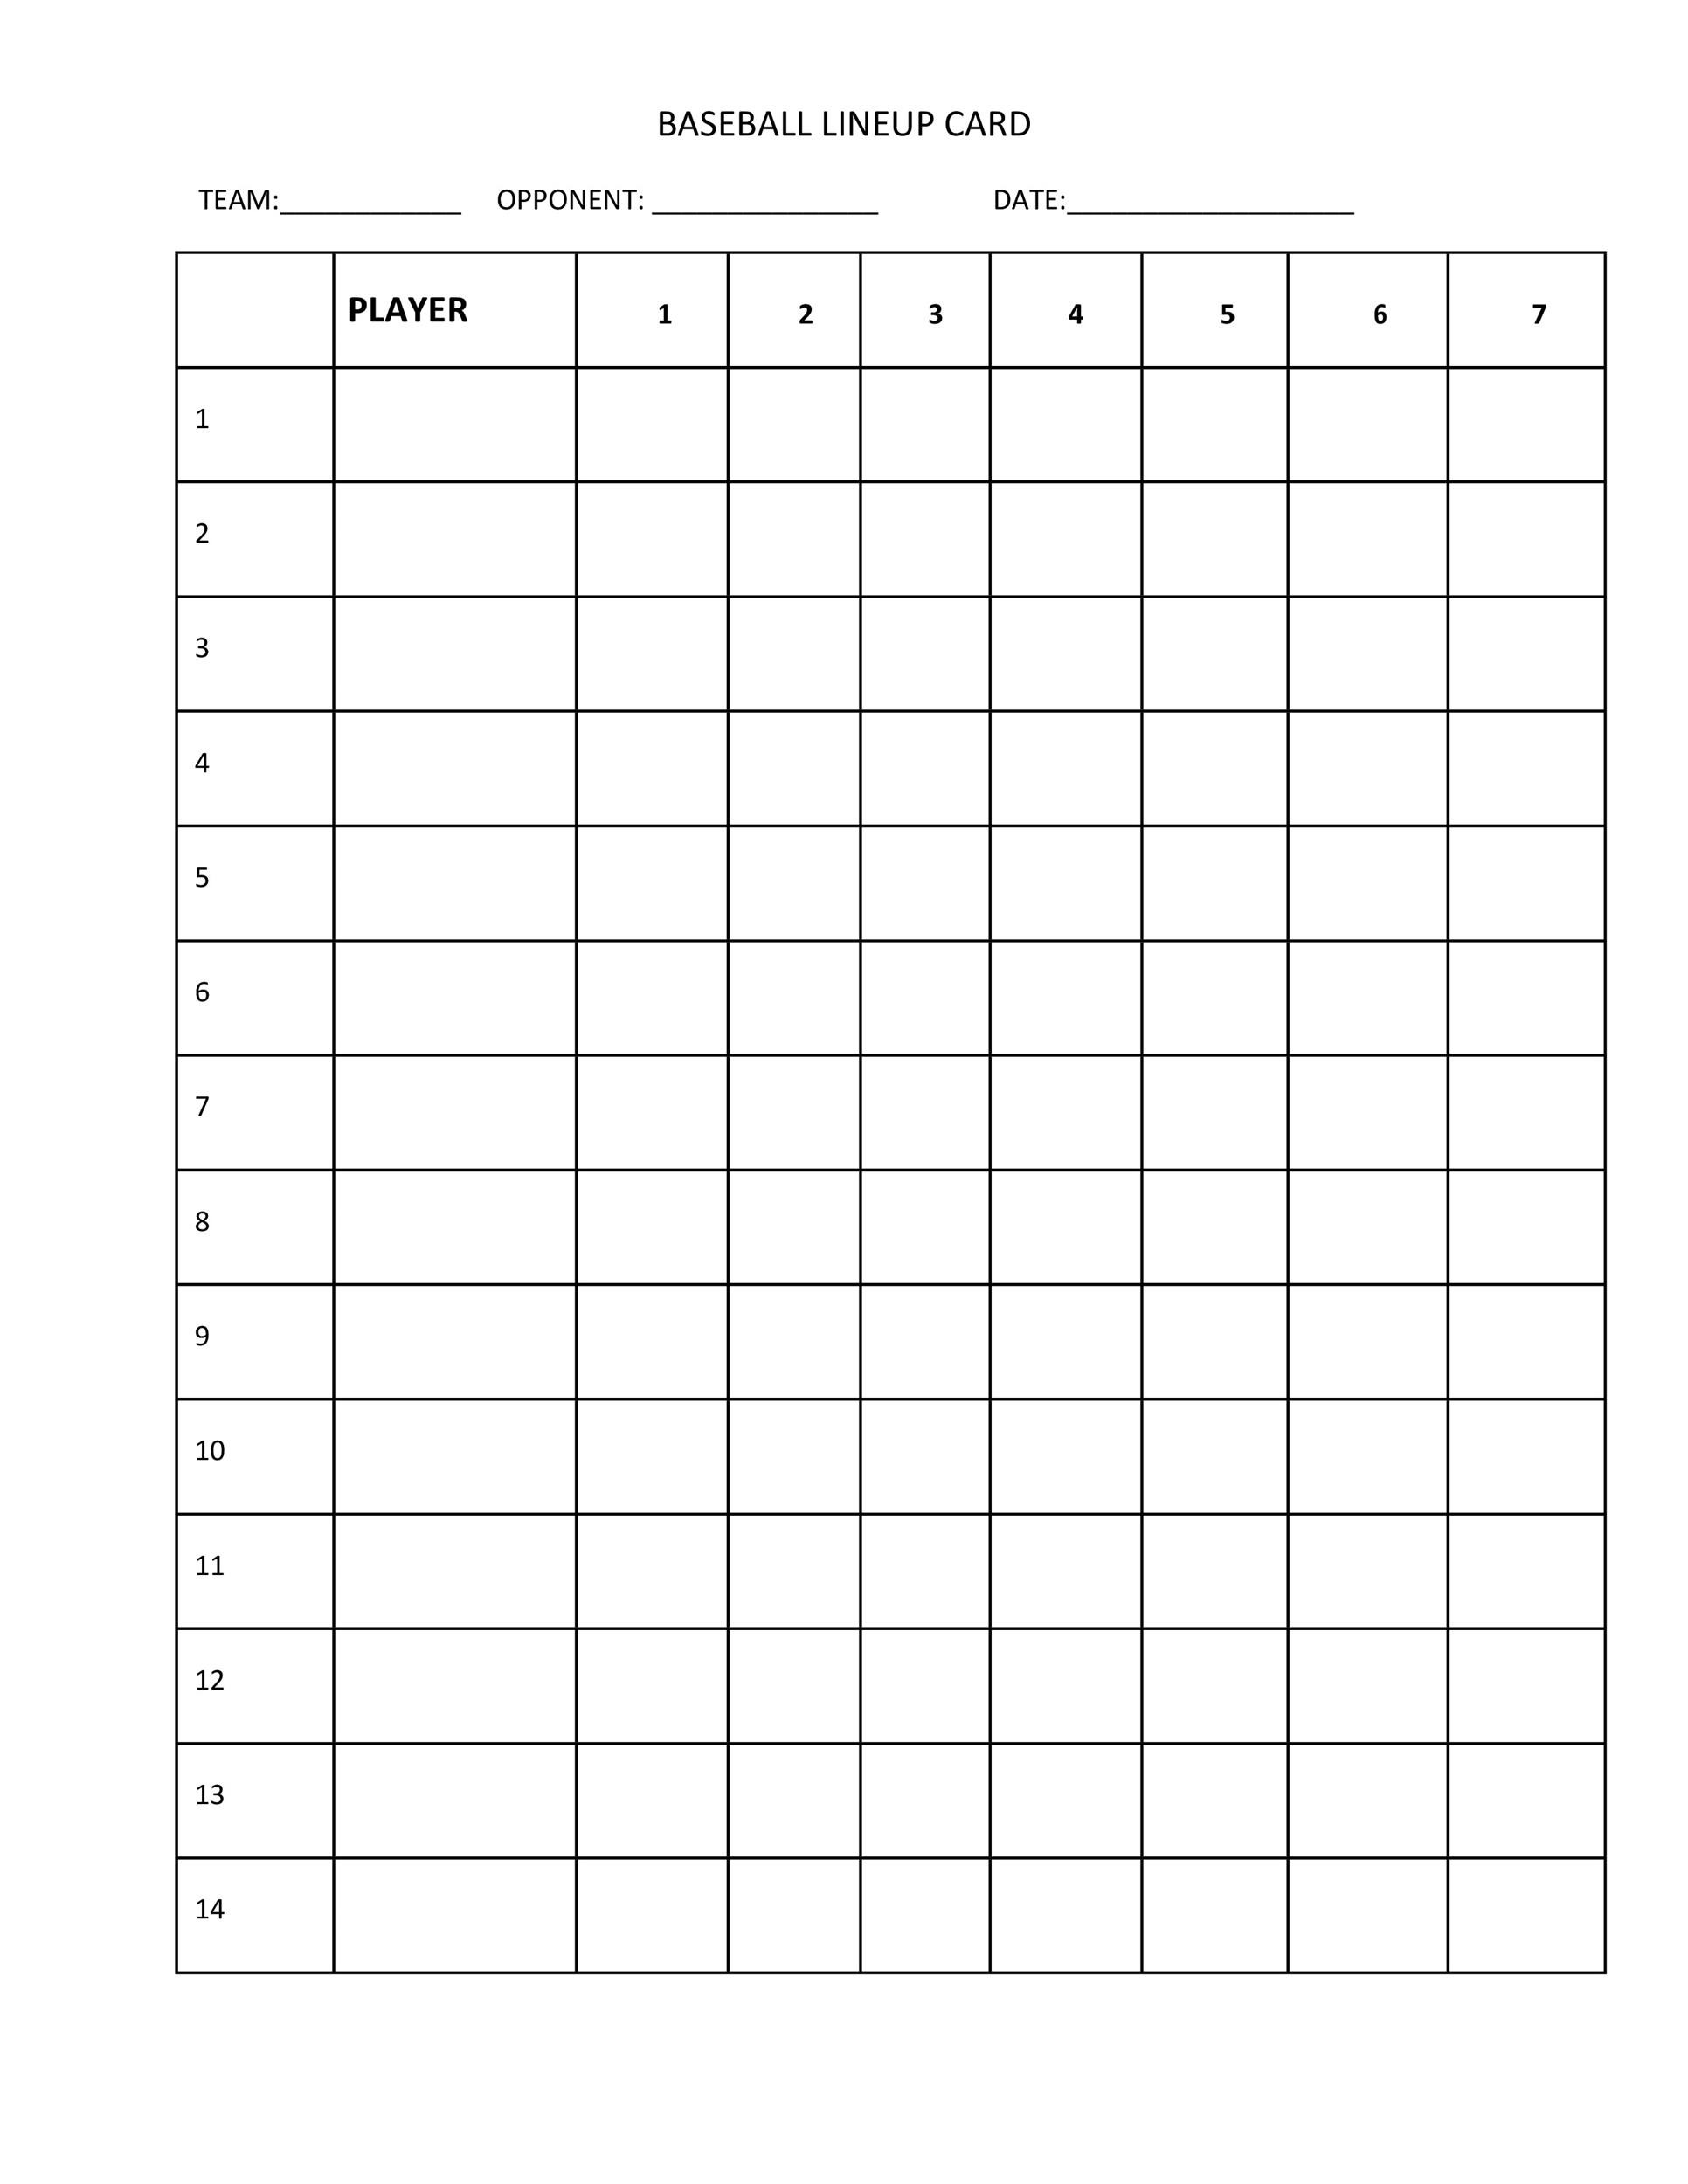 photo regarding Printable Baseball Lineup Card named 33 Printable Baseball Lineup Templates [Absolutely free Obtain] ᐅ